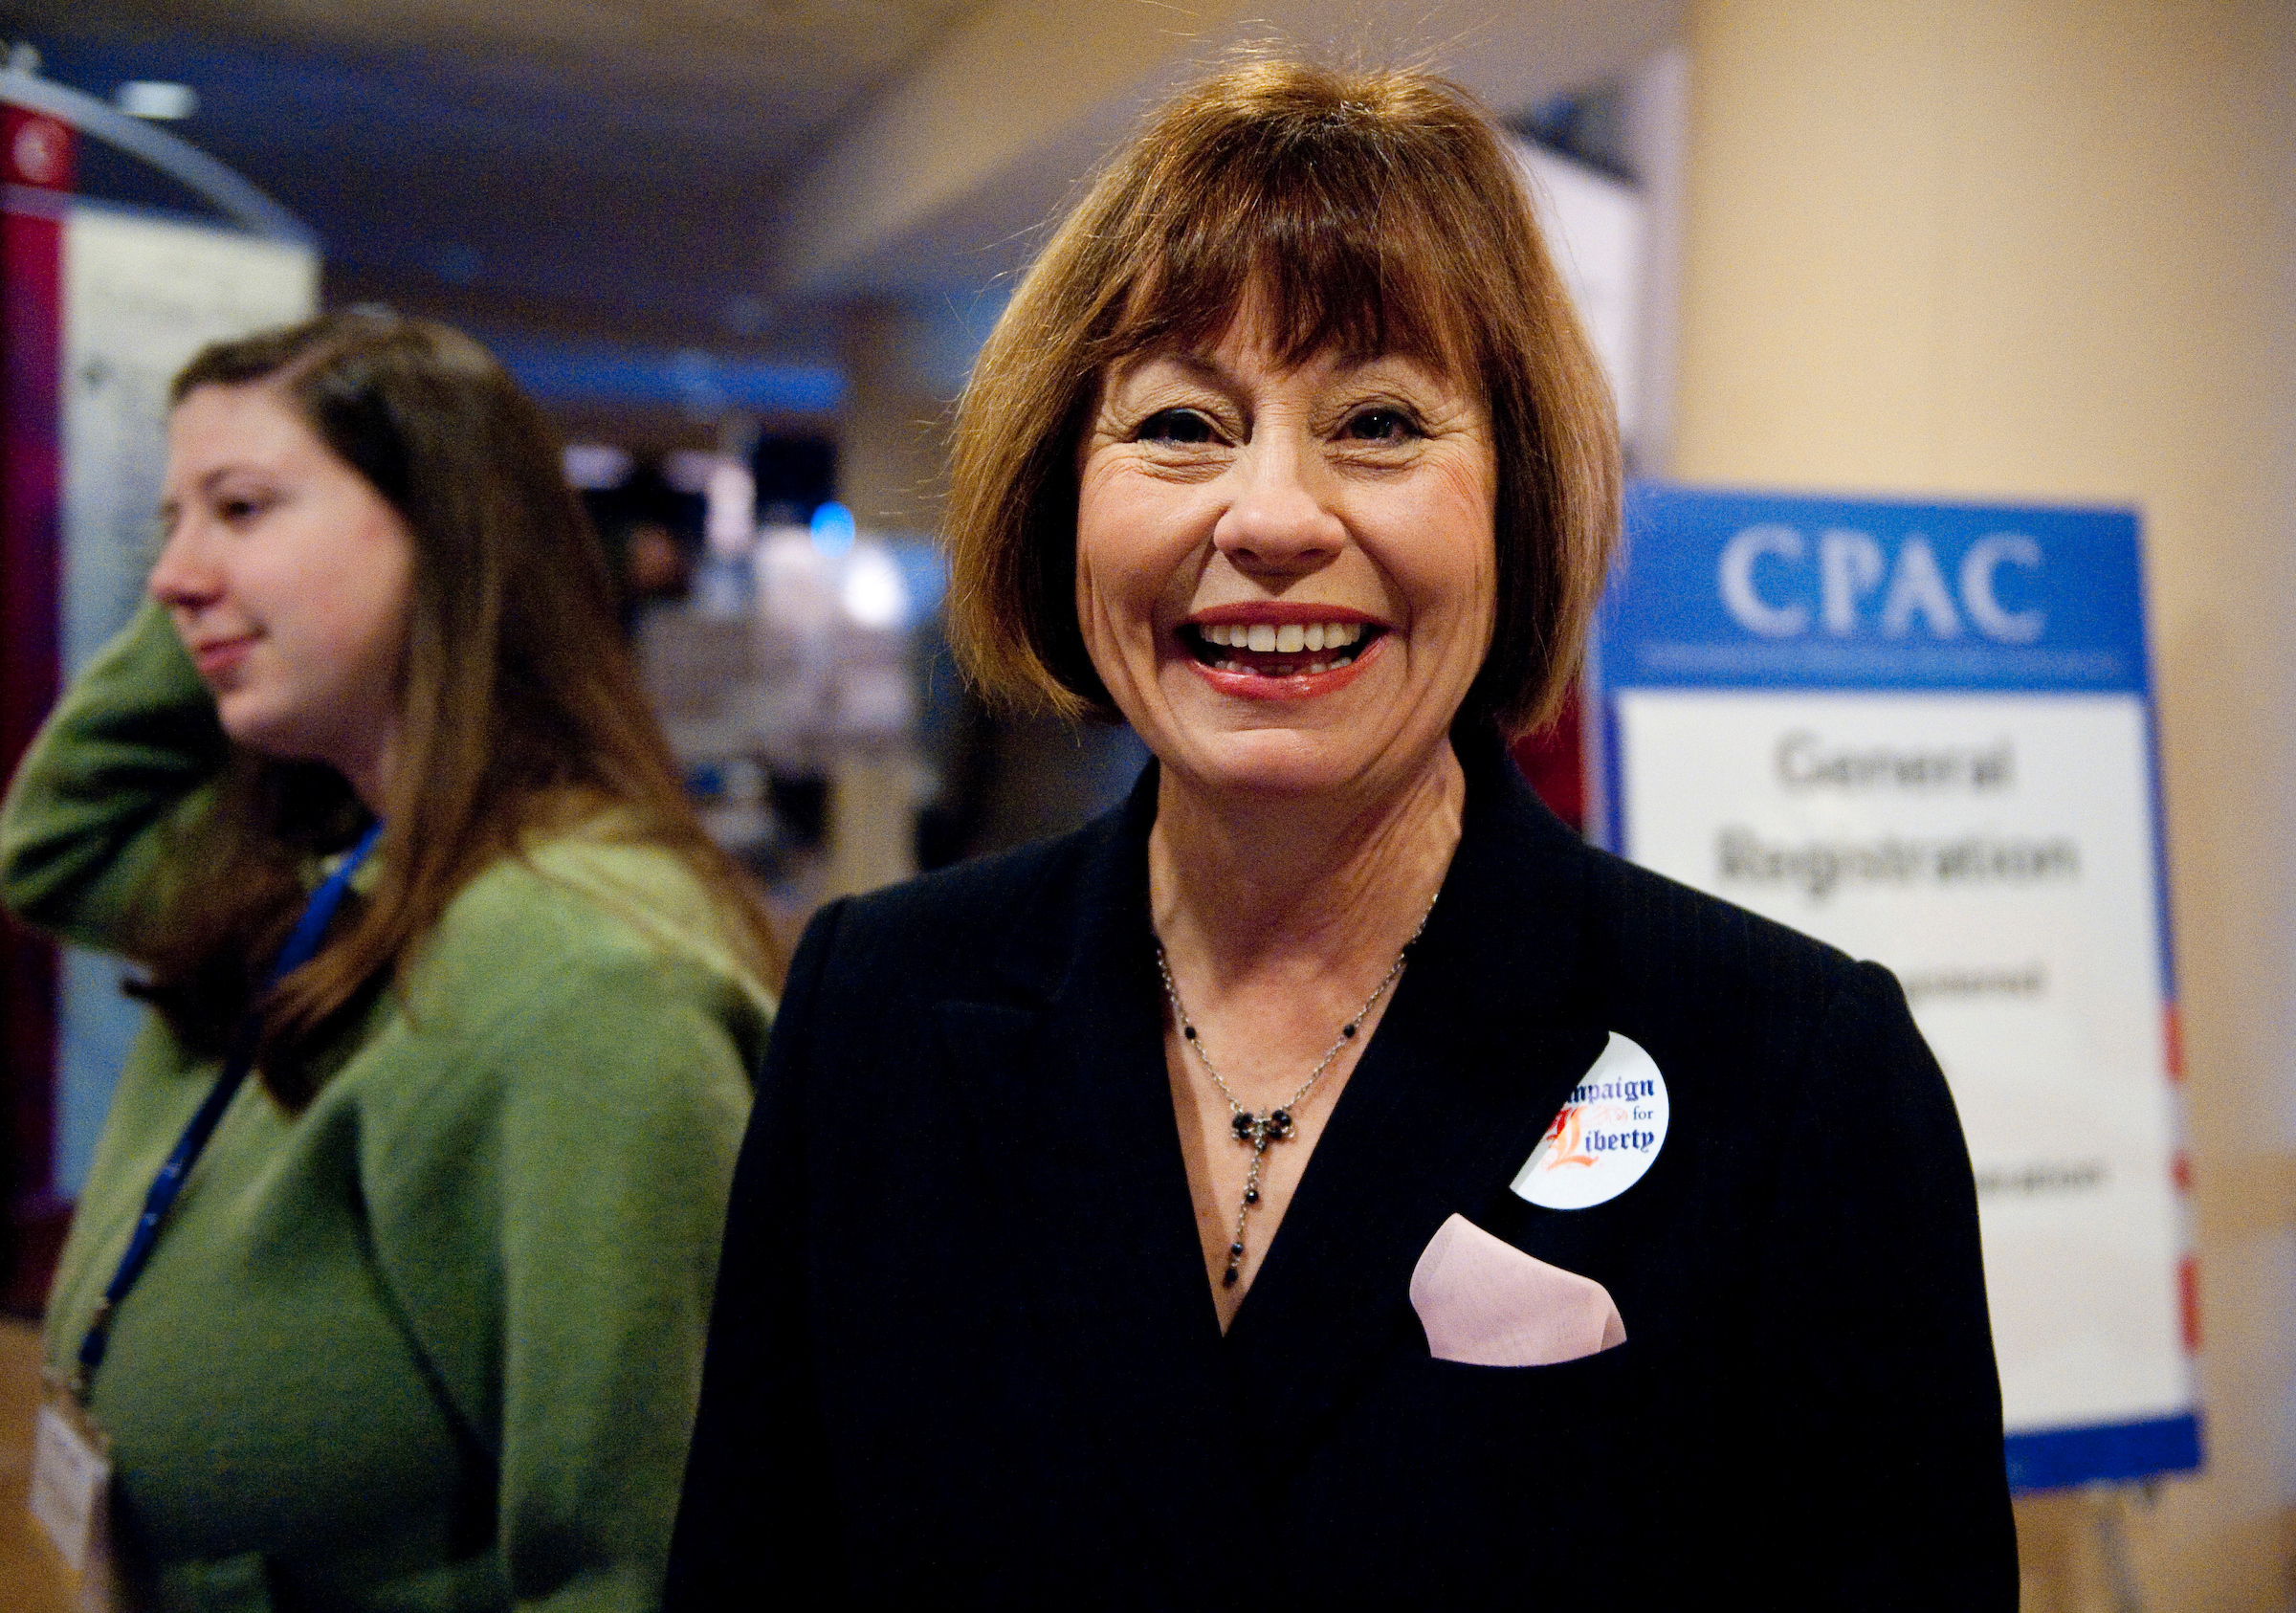 UNITED STATES - FEBRUARY 10: Former Senate candidate Sharron Angle, R-Nev., arrives for the CPAC meeting, held by the American Conservative Union in Washington on Thursday, Feb. 10, 2010. (Photo By Bill Clark/Roll Call)